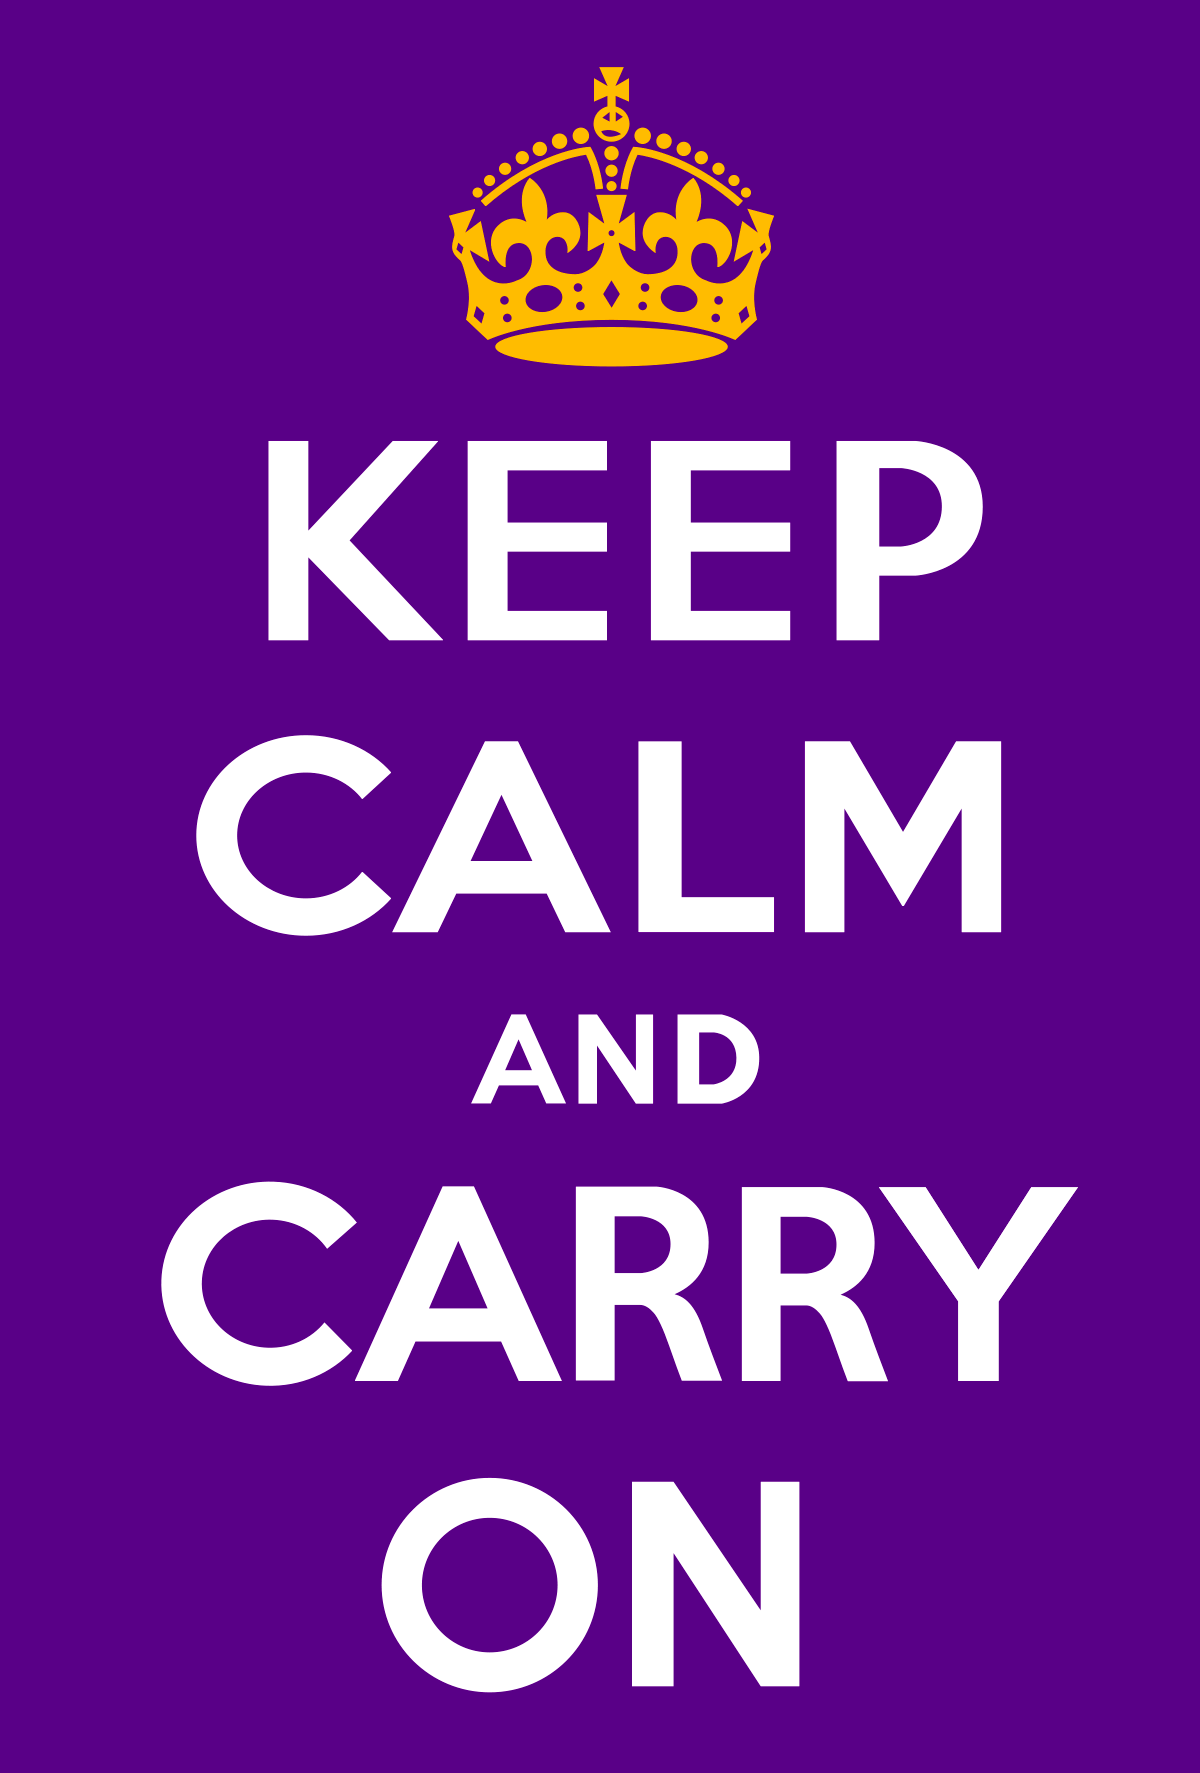 Keep calm and carry on graphic.